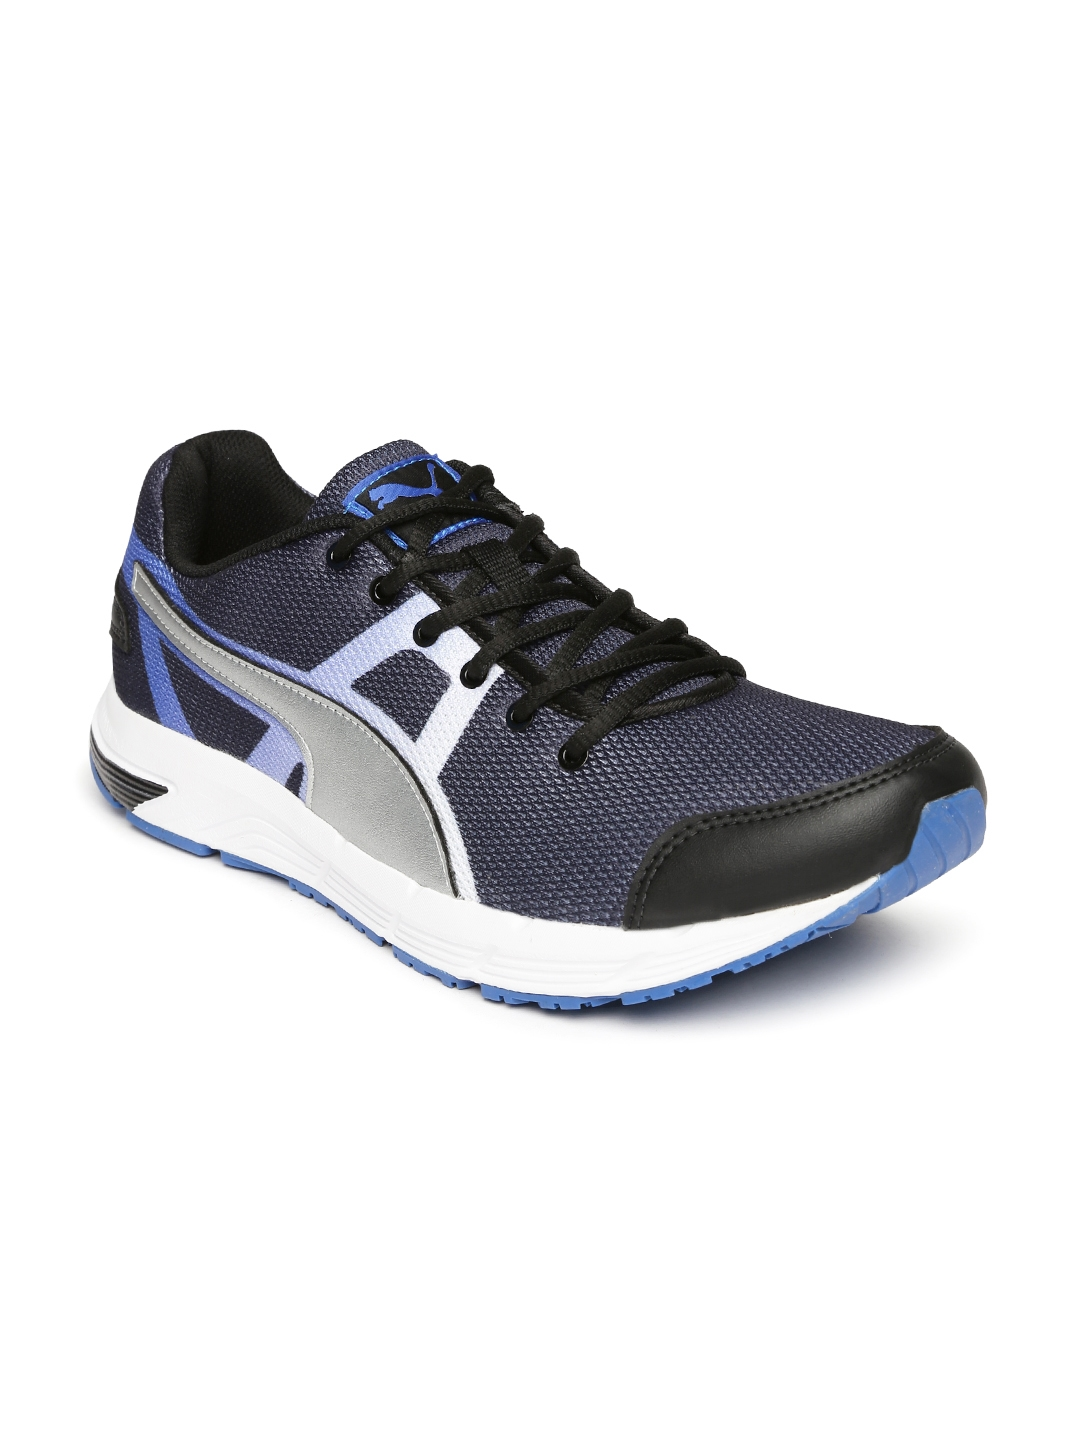 Buy Hermes For Navy Men Sports Running Shoes Idp Puma hCrtdBsQx